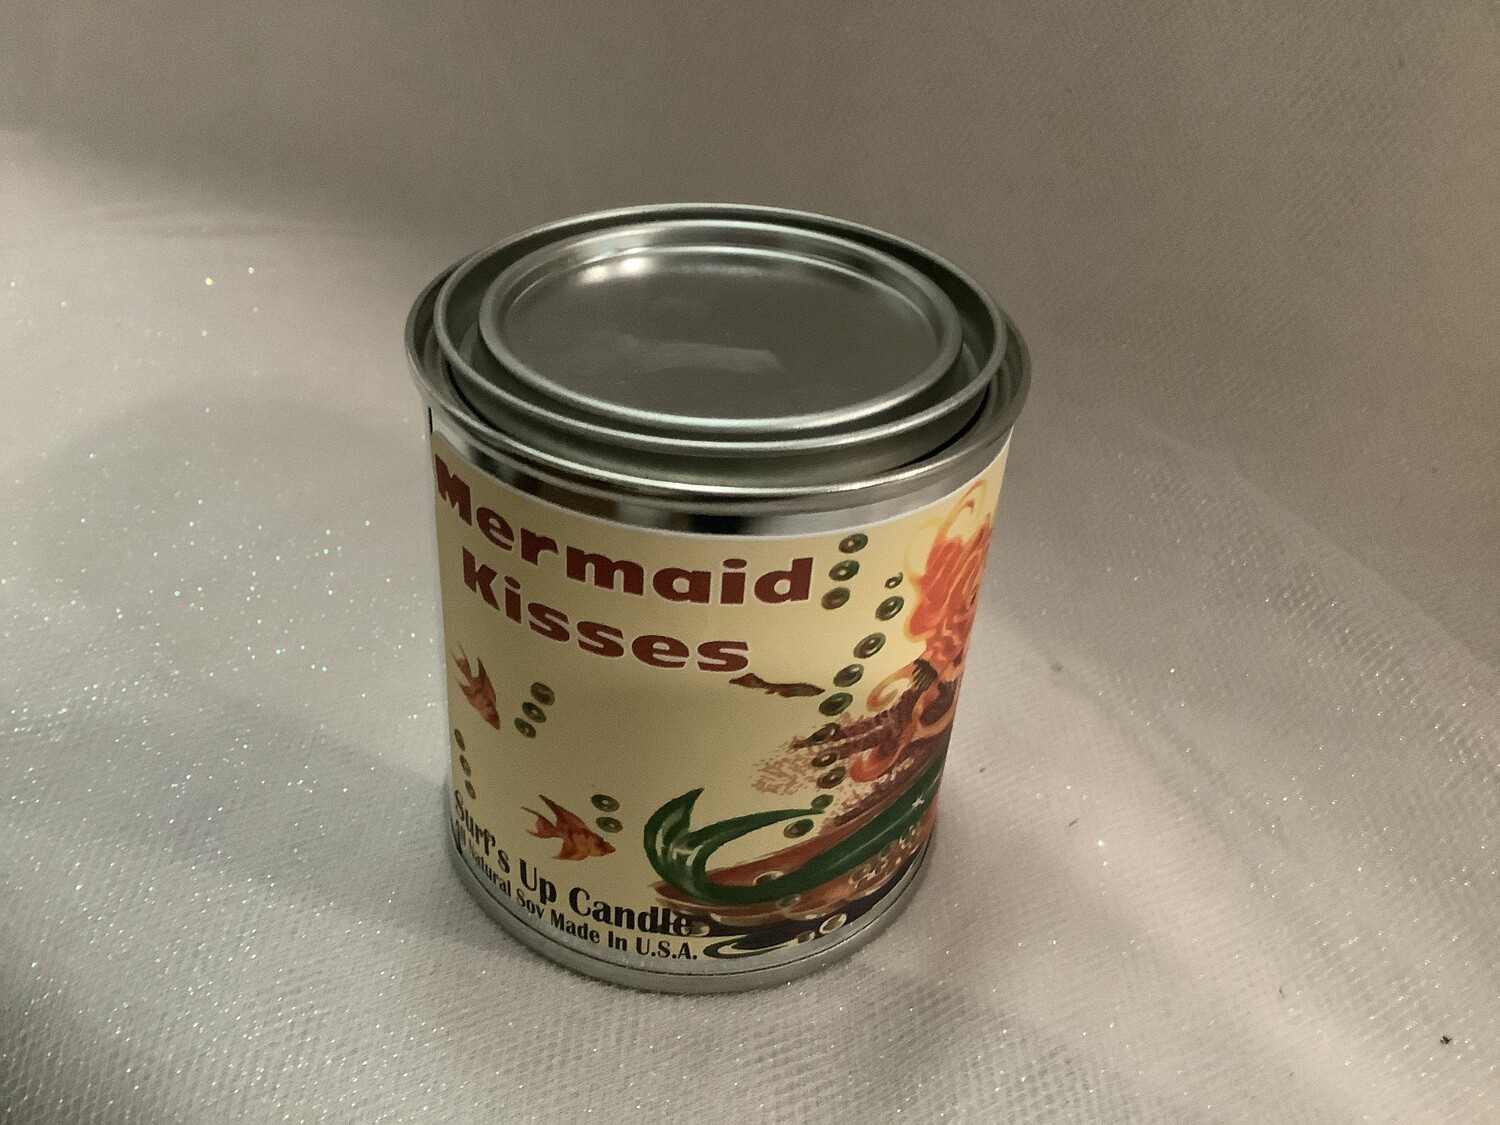 MERMAID KISSES PAINT CAN CANDLE 1/2 PINT